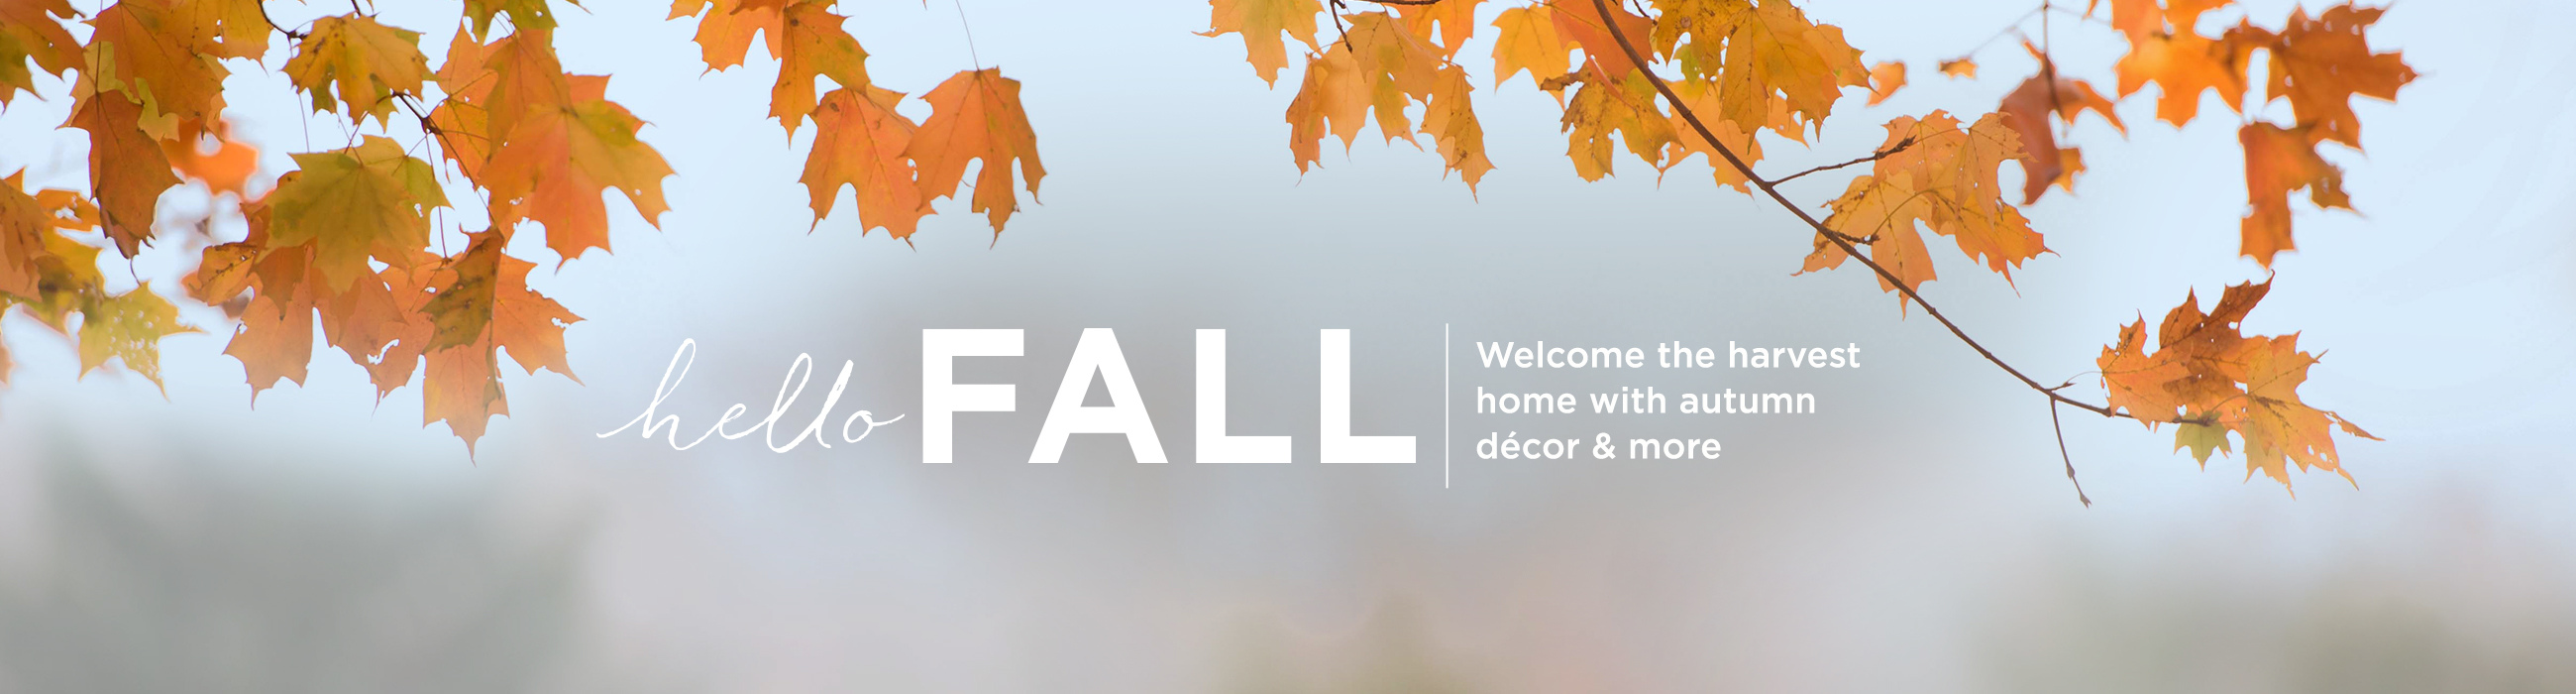 Welcome The Harvest Home With Autumn Décor More